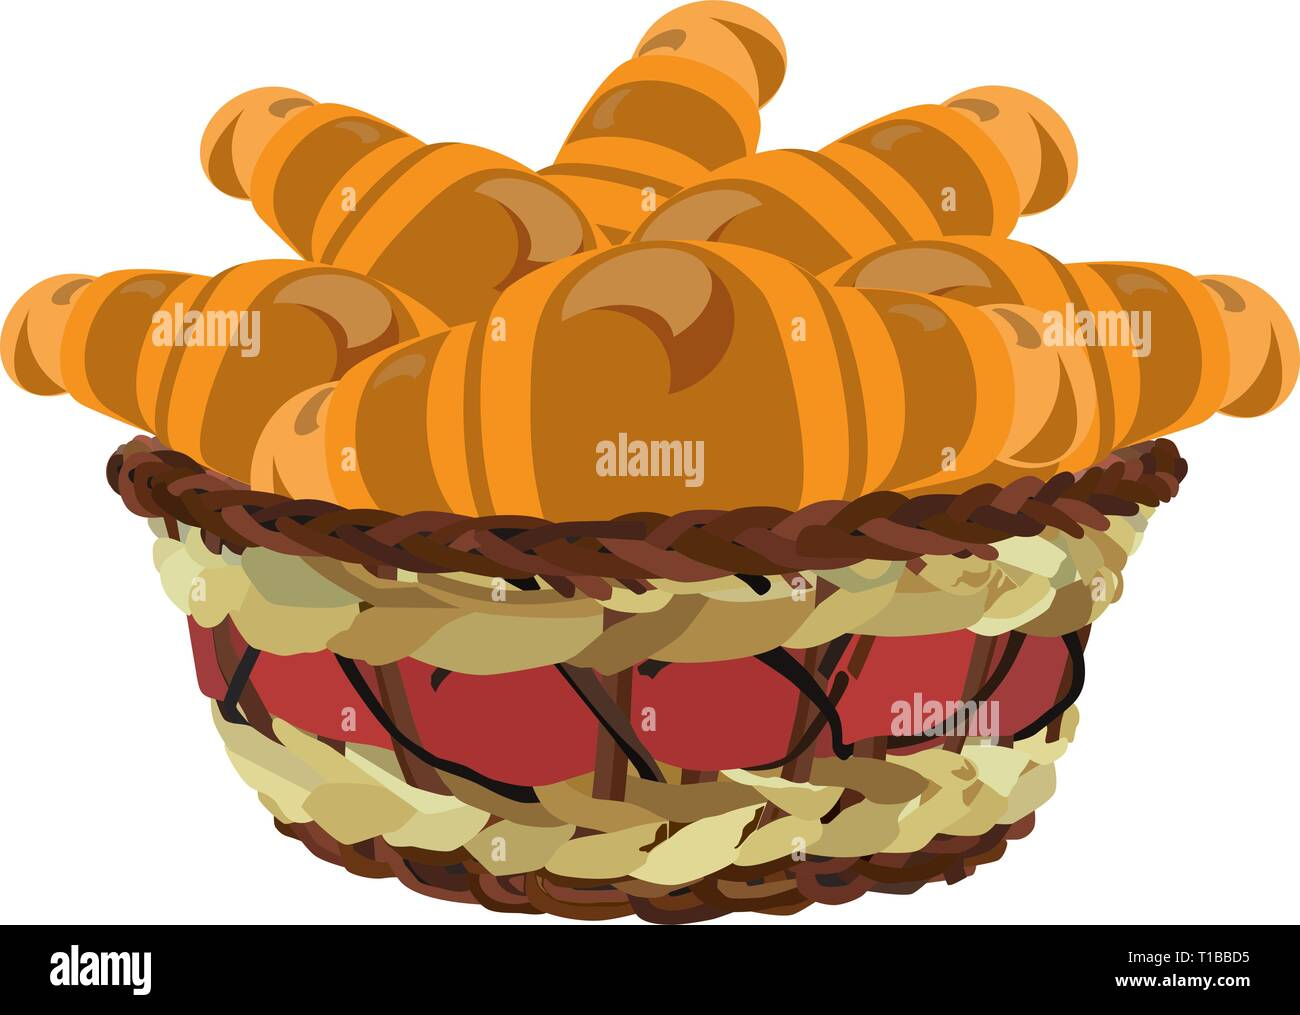 Wicker basket with croissants, vector flat illustration - Stock Image